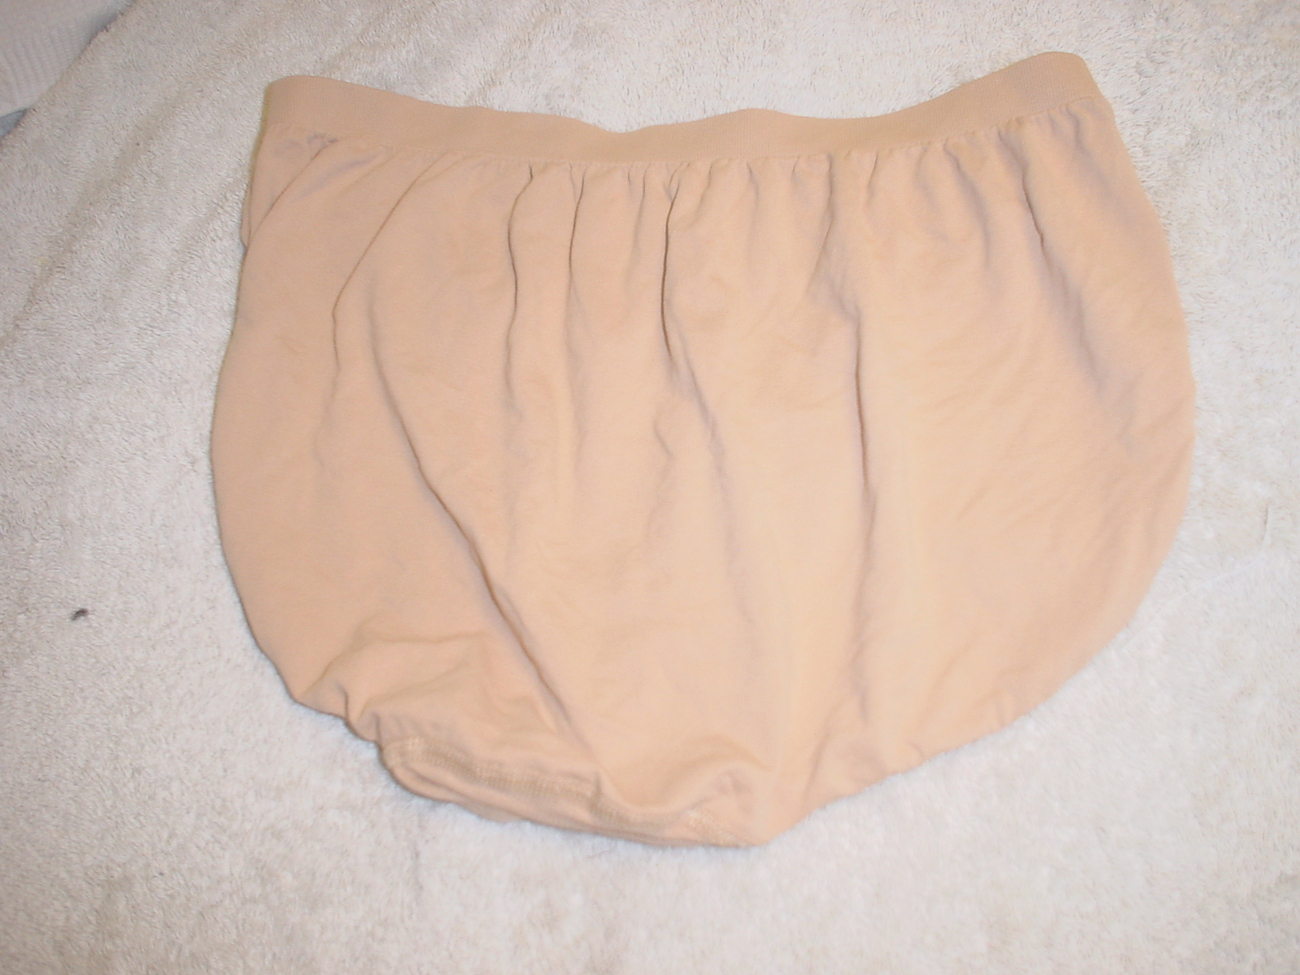 Jockey Seamfree Panty 8/XLarge Dark Nude SP-Slightly Imperfect NWOT